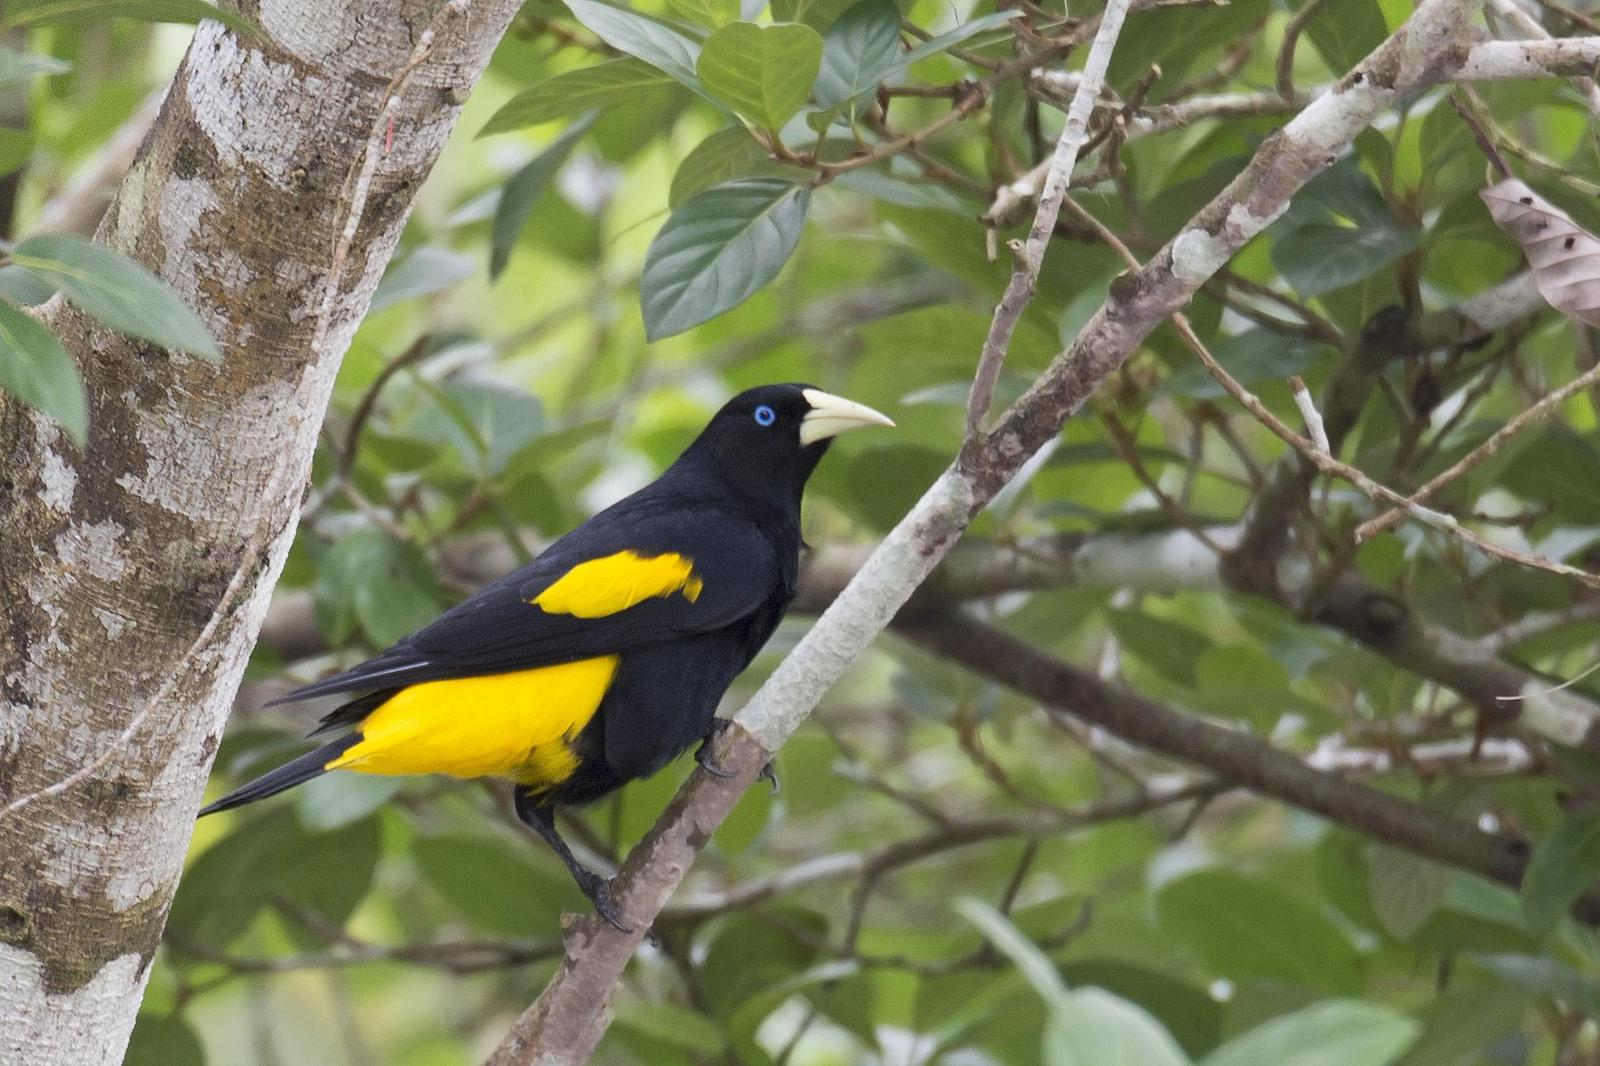 Yellow-rumped Cacique Photo by Debra Herst